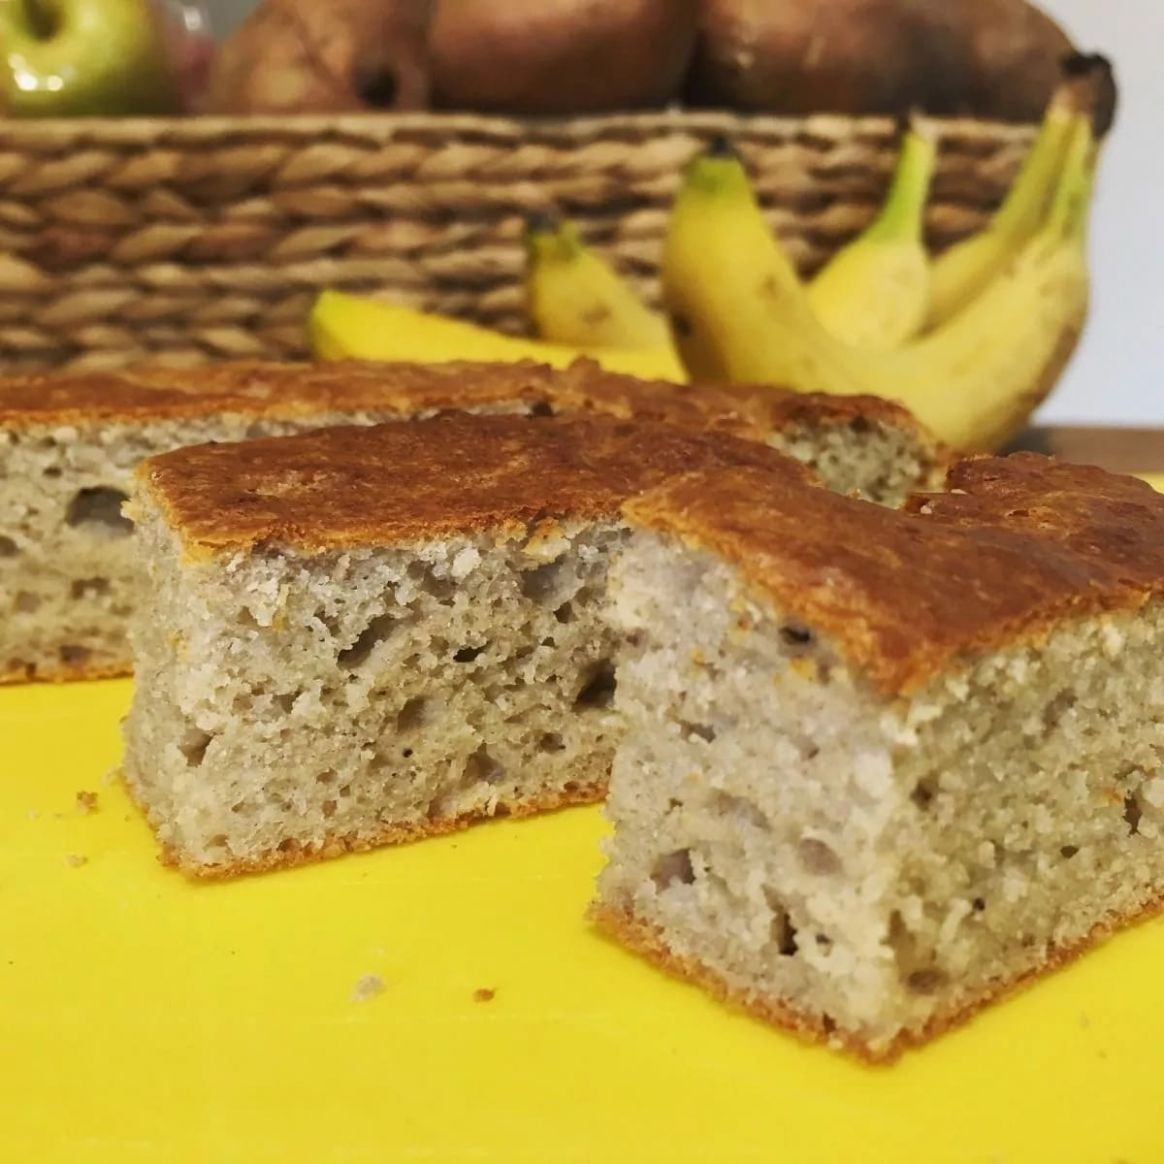 Easy banana cake recipe with plain flour ▷ Legit.ng